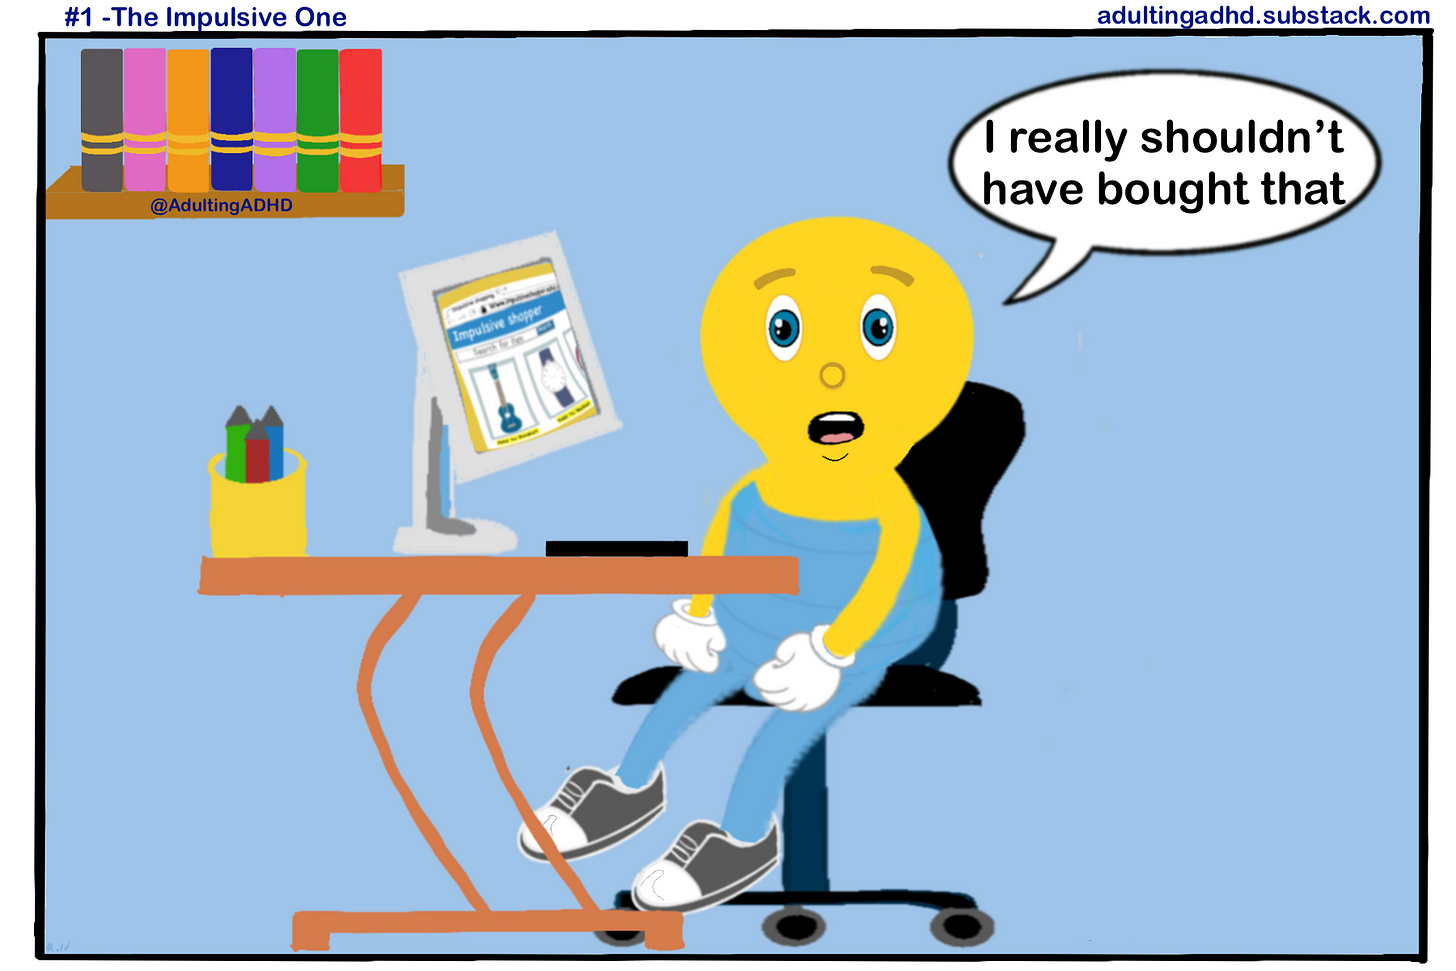 """A character that's looks like a lightbulb with a human body and facial features, sat in a room at a desk that has a computer, a desk and a keyboard on it. There's also a bookshelf with 7 books on it in the room. There is a speech bubble by the character which says """"I really shouldn't have bought that""""."""